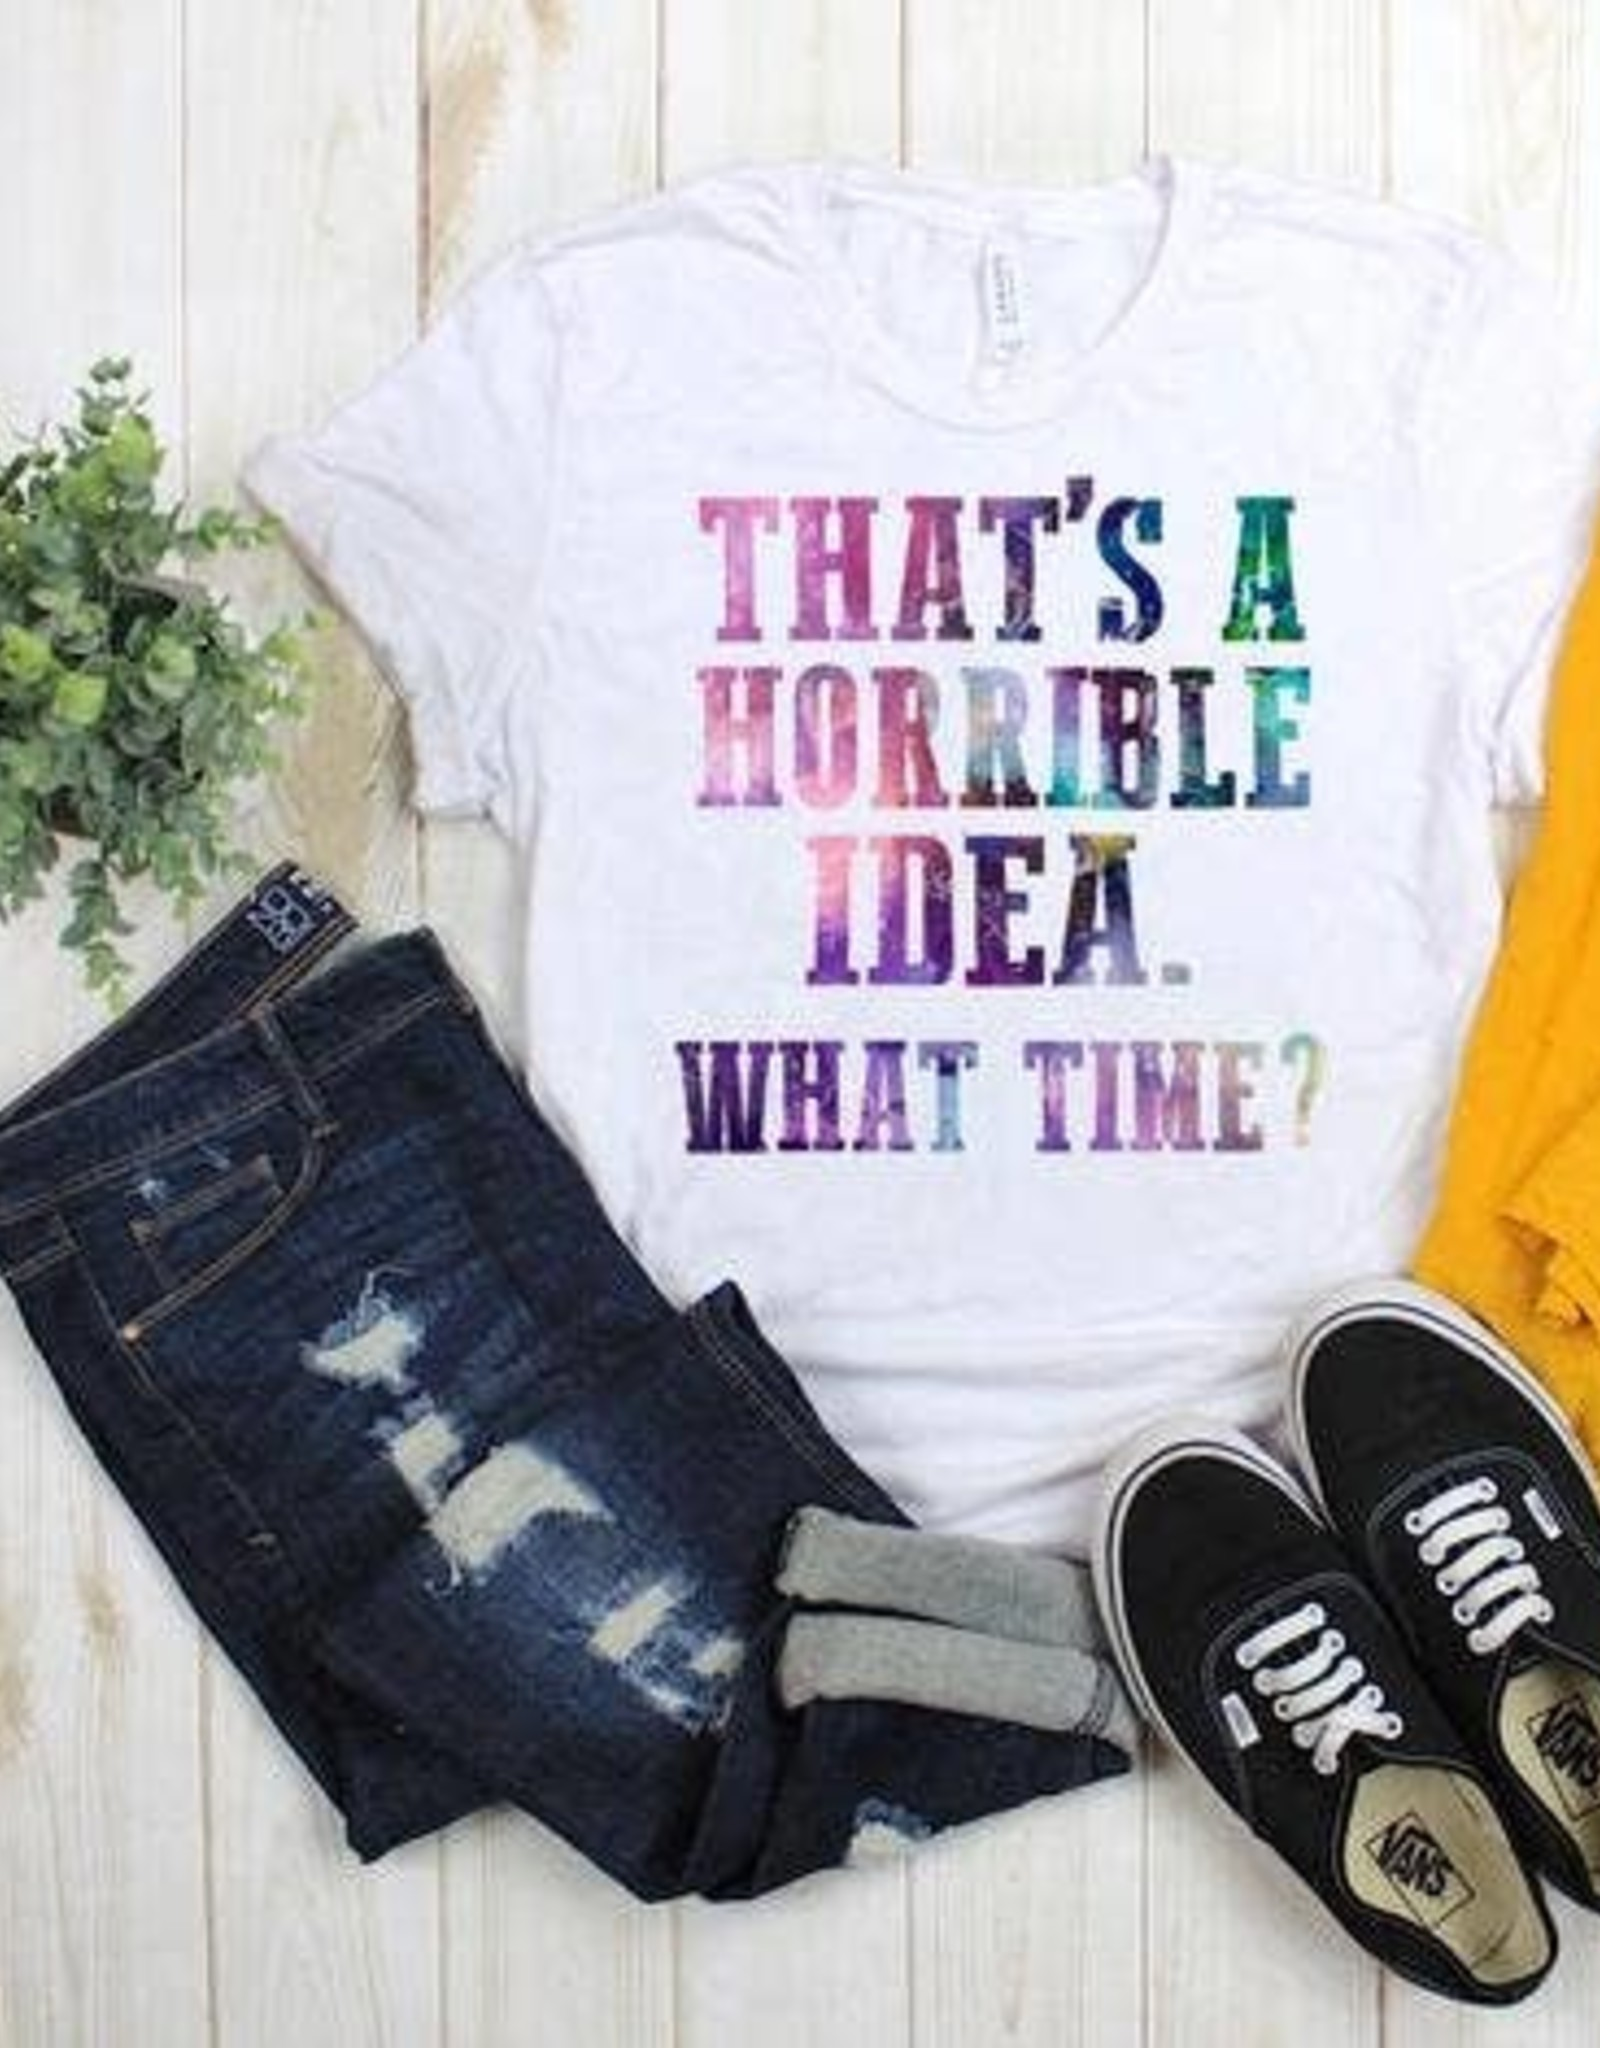 That's A Horrible Idea...What Time? Shirt